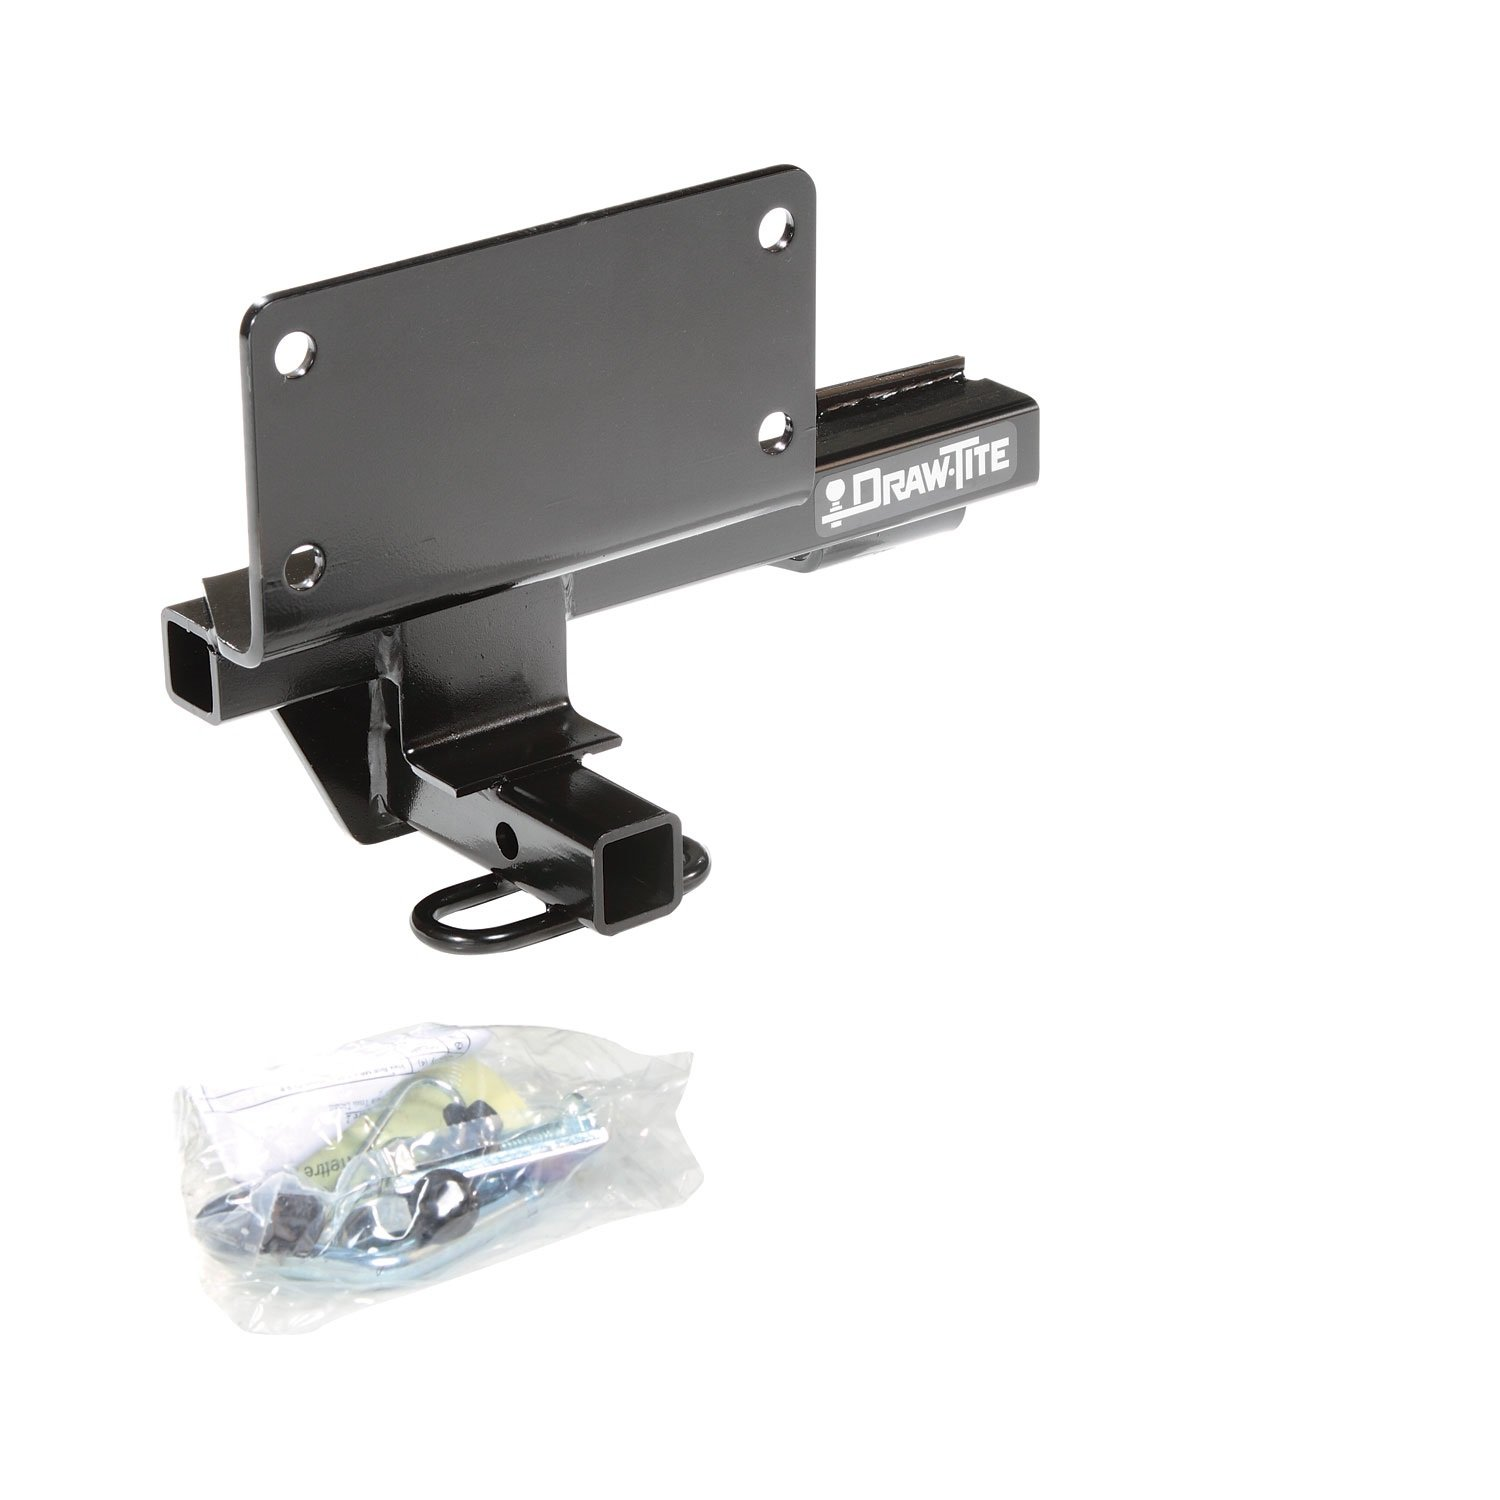 Draw-Tite 24831 Class I Sportframe Hitch with 1-1/4'' Square Receiver Tube Opening by Draw-Tite